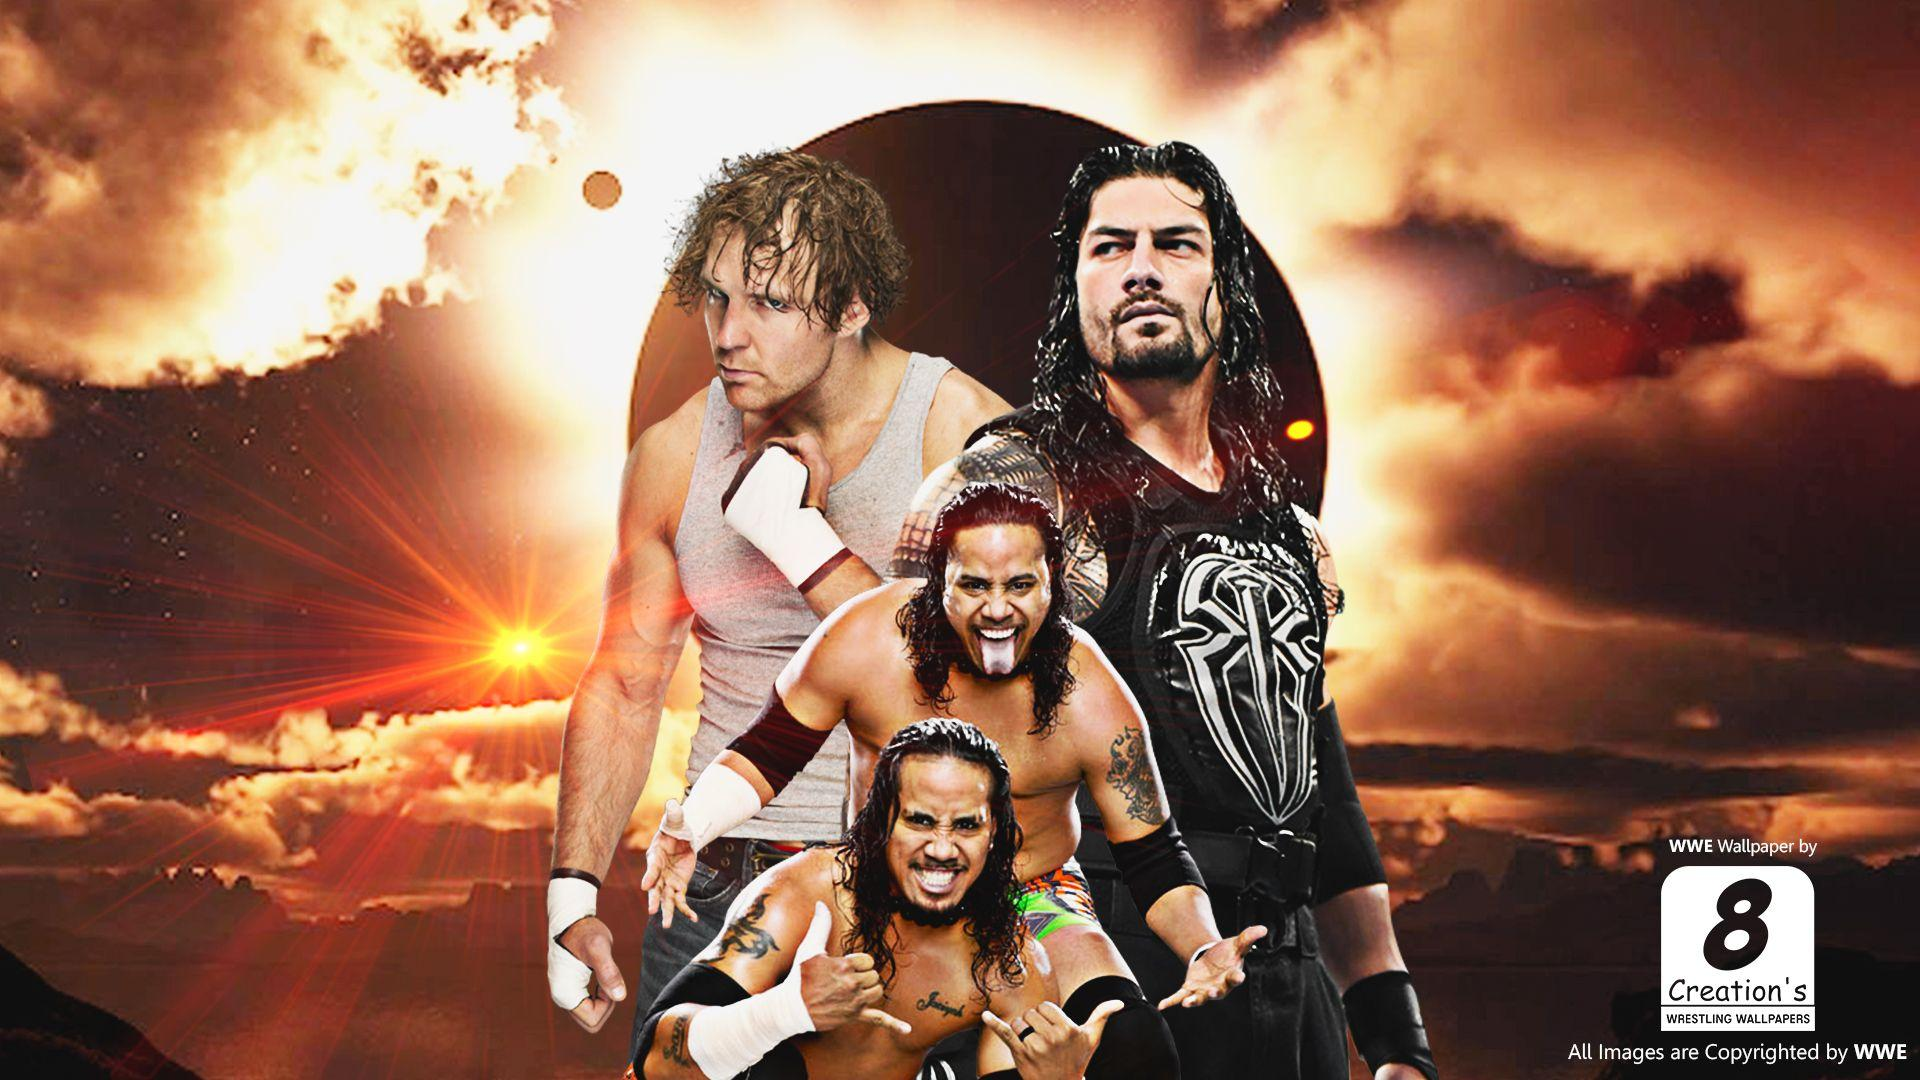 Dean Ambrose And Roman Reigns Wallpapers Wallpaper Cave